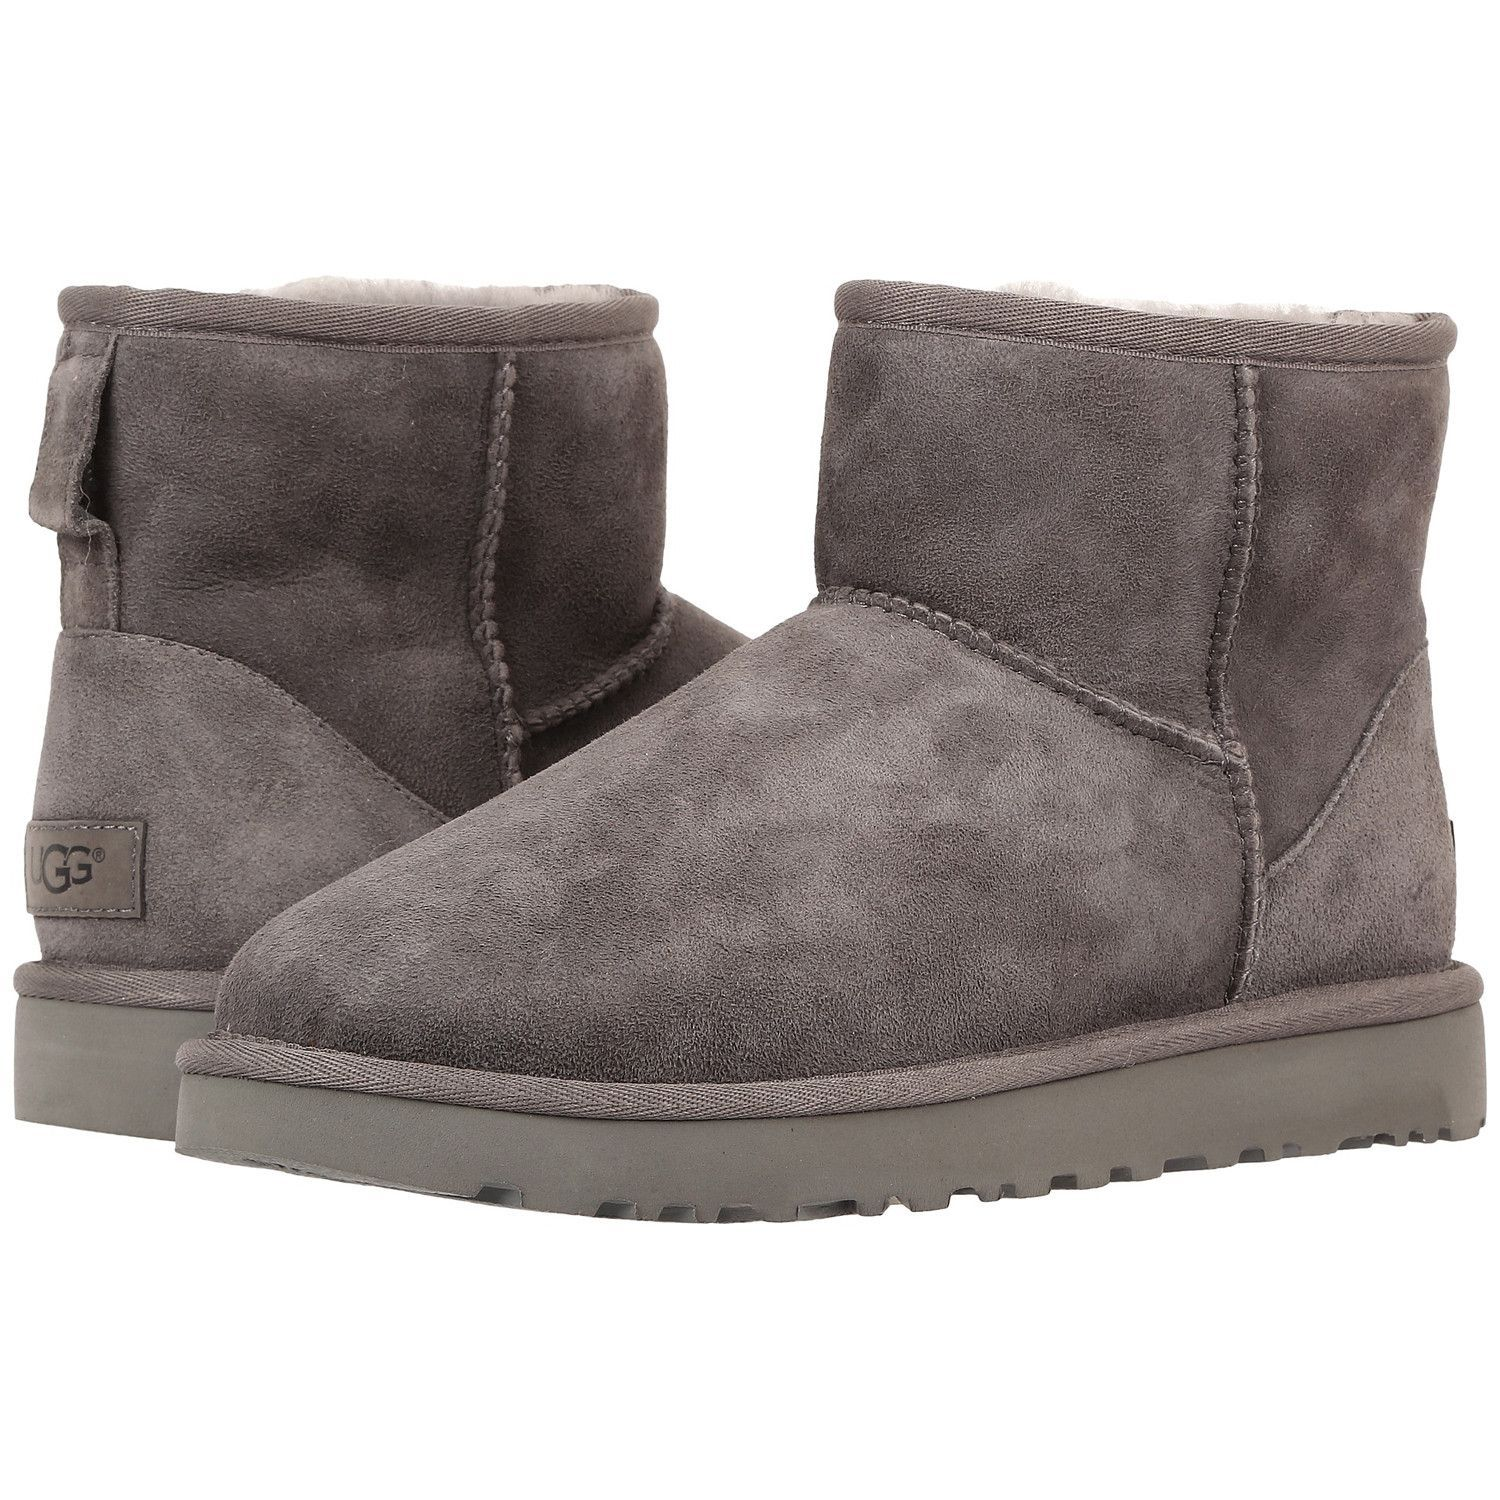 8e9aae50c43 UGG Classic Mini II Women | Grey (1016222) | Uggs | Ugg mini boots ...